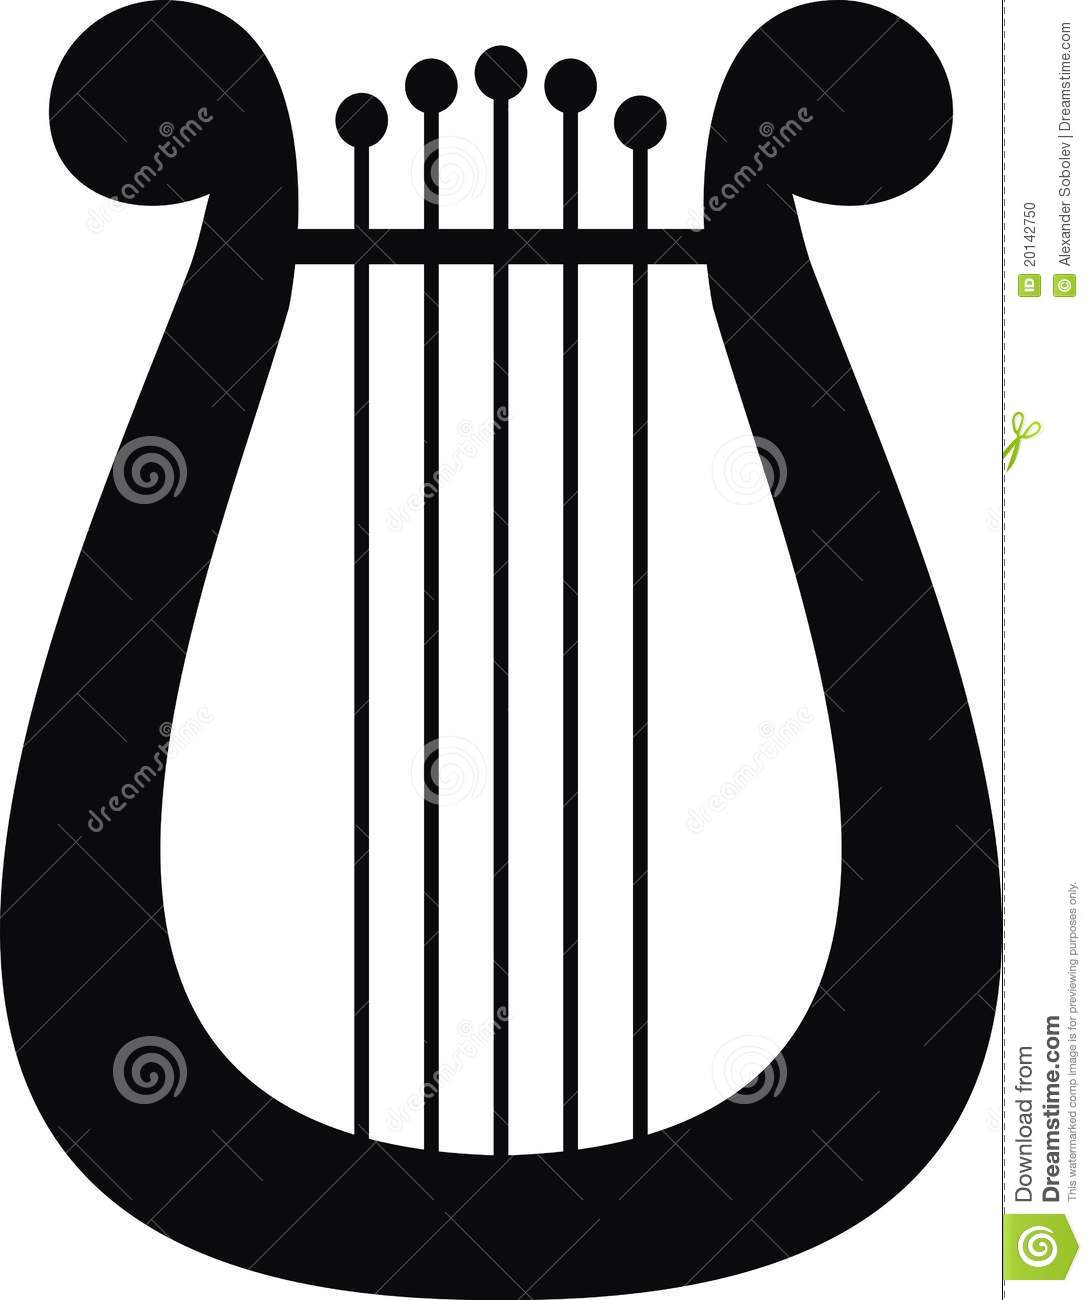 Lyre symbol of music and arts stock vector illustration of lyre symbol of music and arts buycottarizona